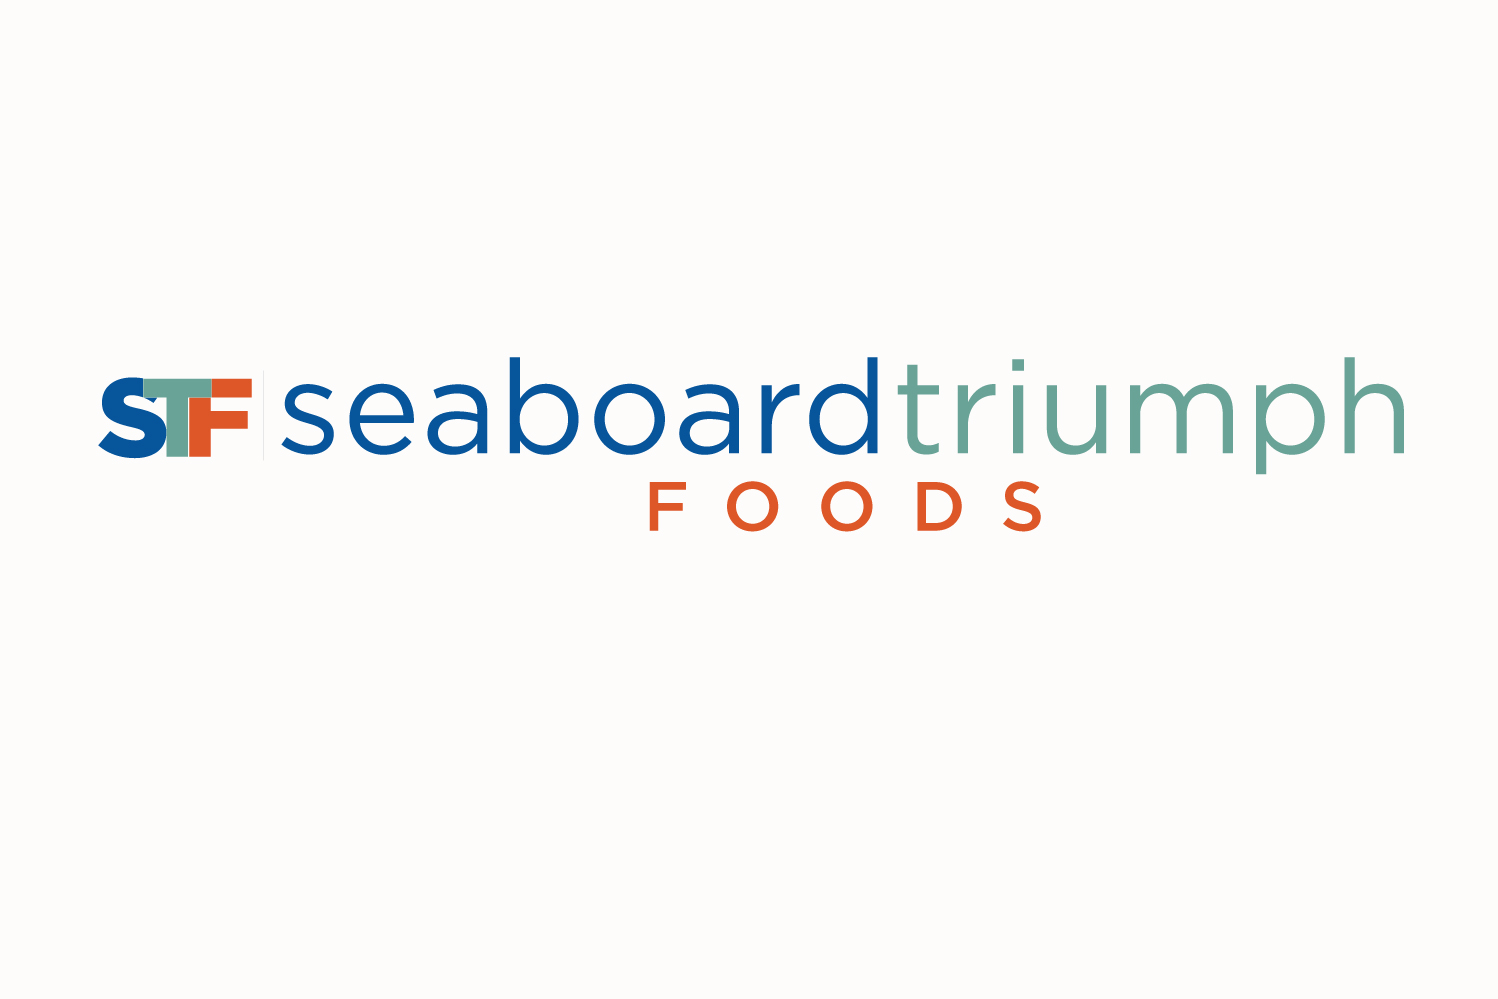 Seaboard Triumph Foods Confirms Covid 19 Case In Sioux City Plant Agweb